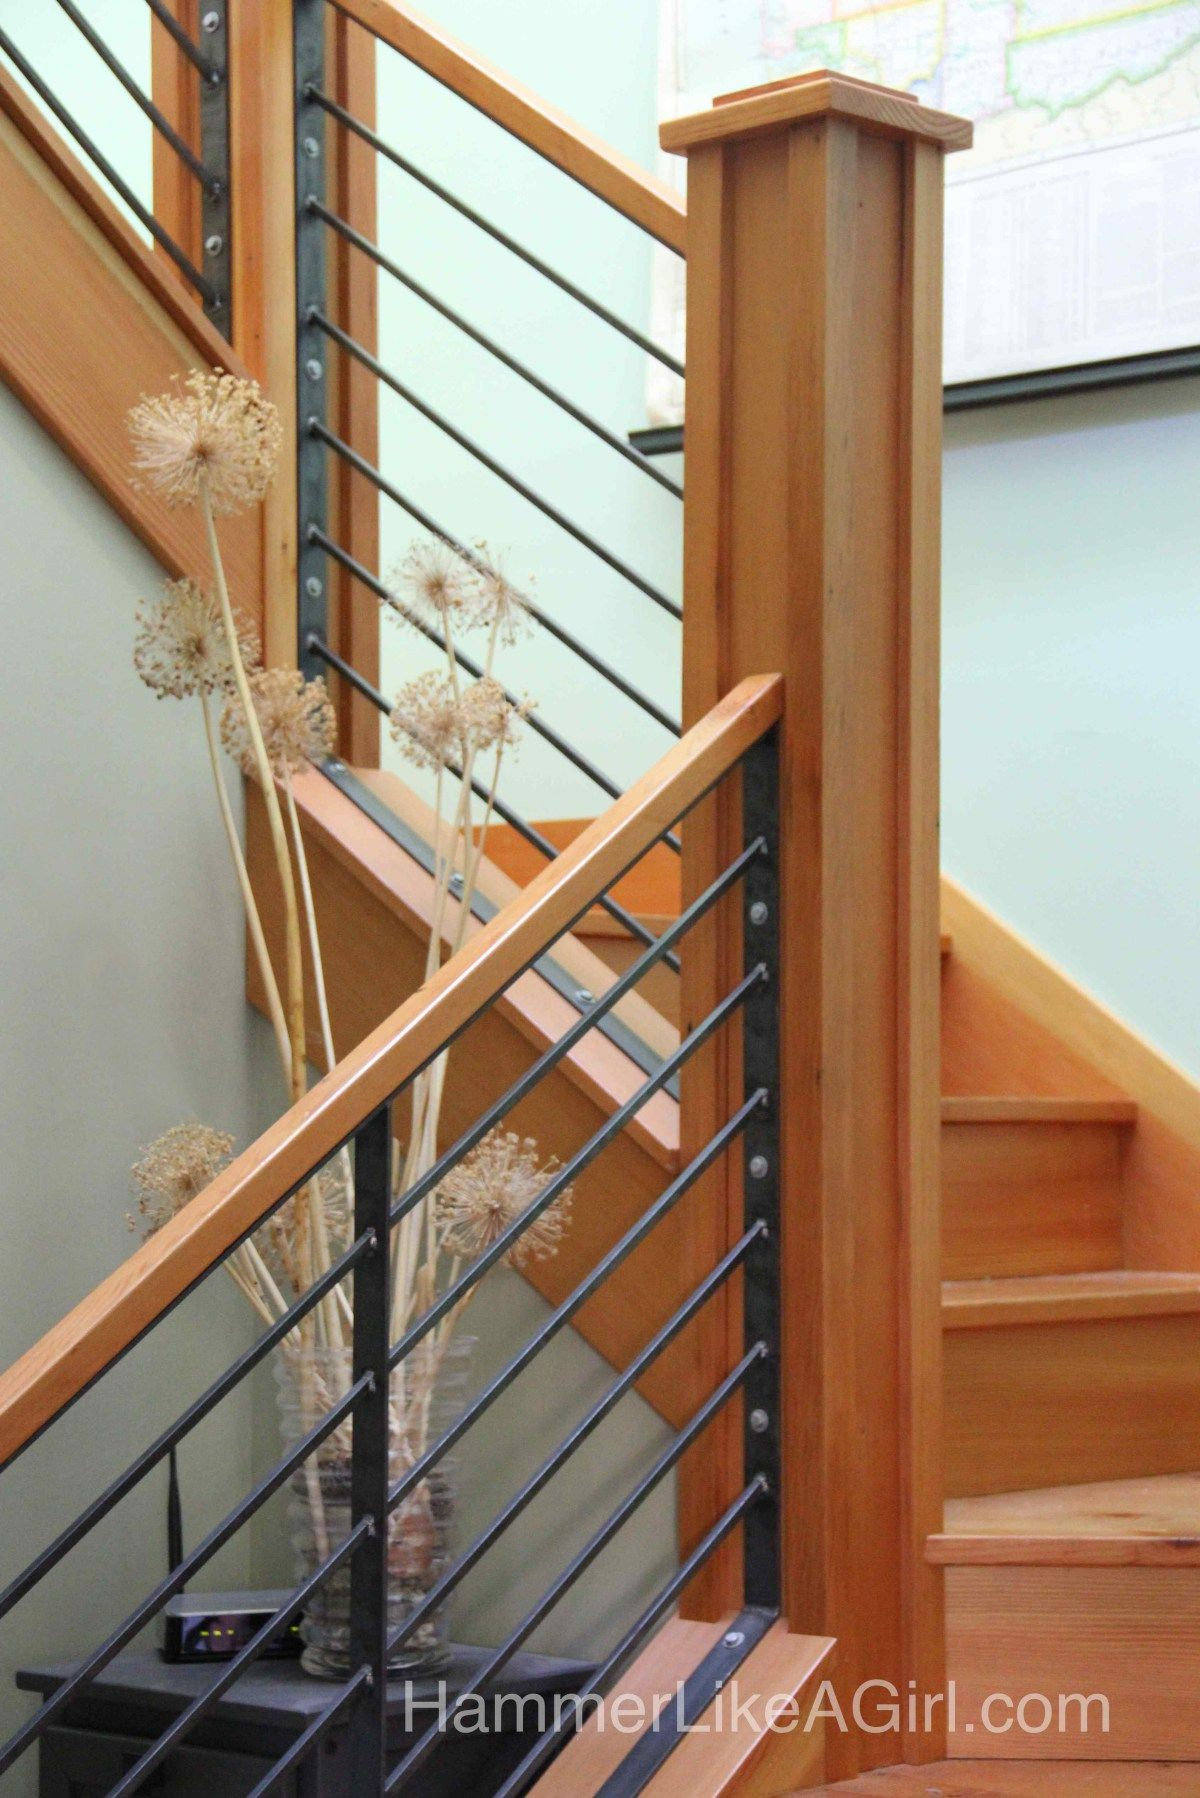 Wood And Metal Stair Hammer Like A Girl Stair Railing Design   Wood Metal Stair Railings   2Nd Floor   Stair Bannister   Exterior   Contemporary   Living Room